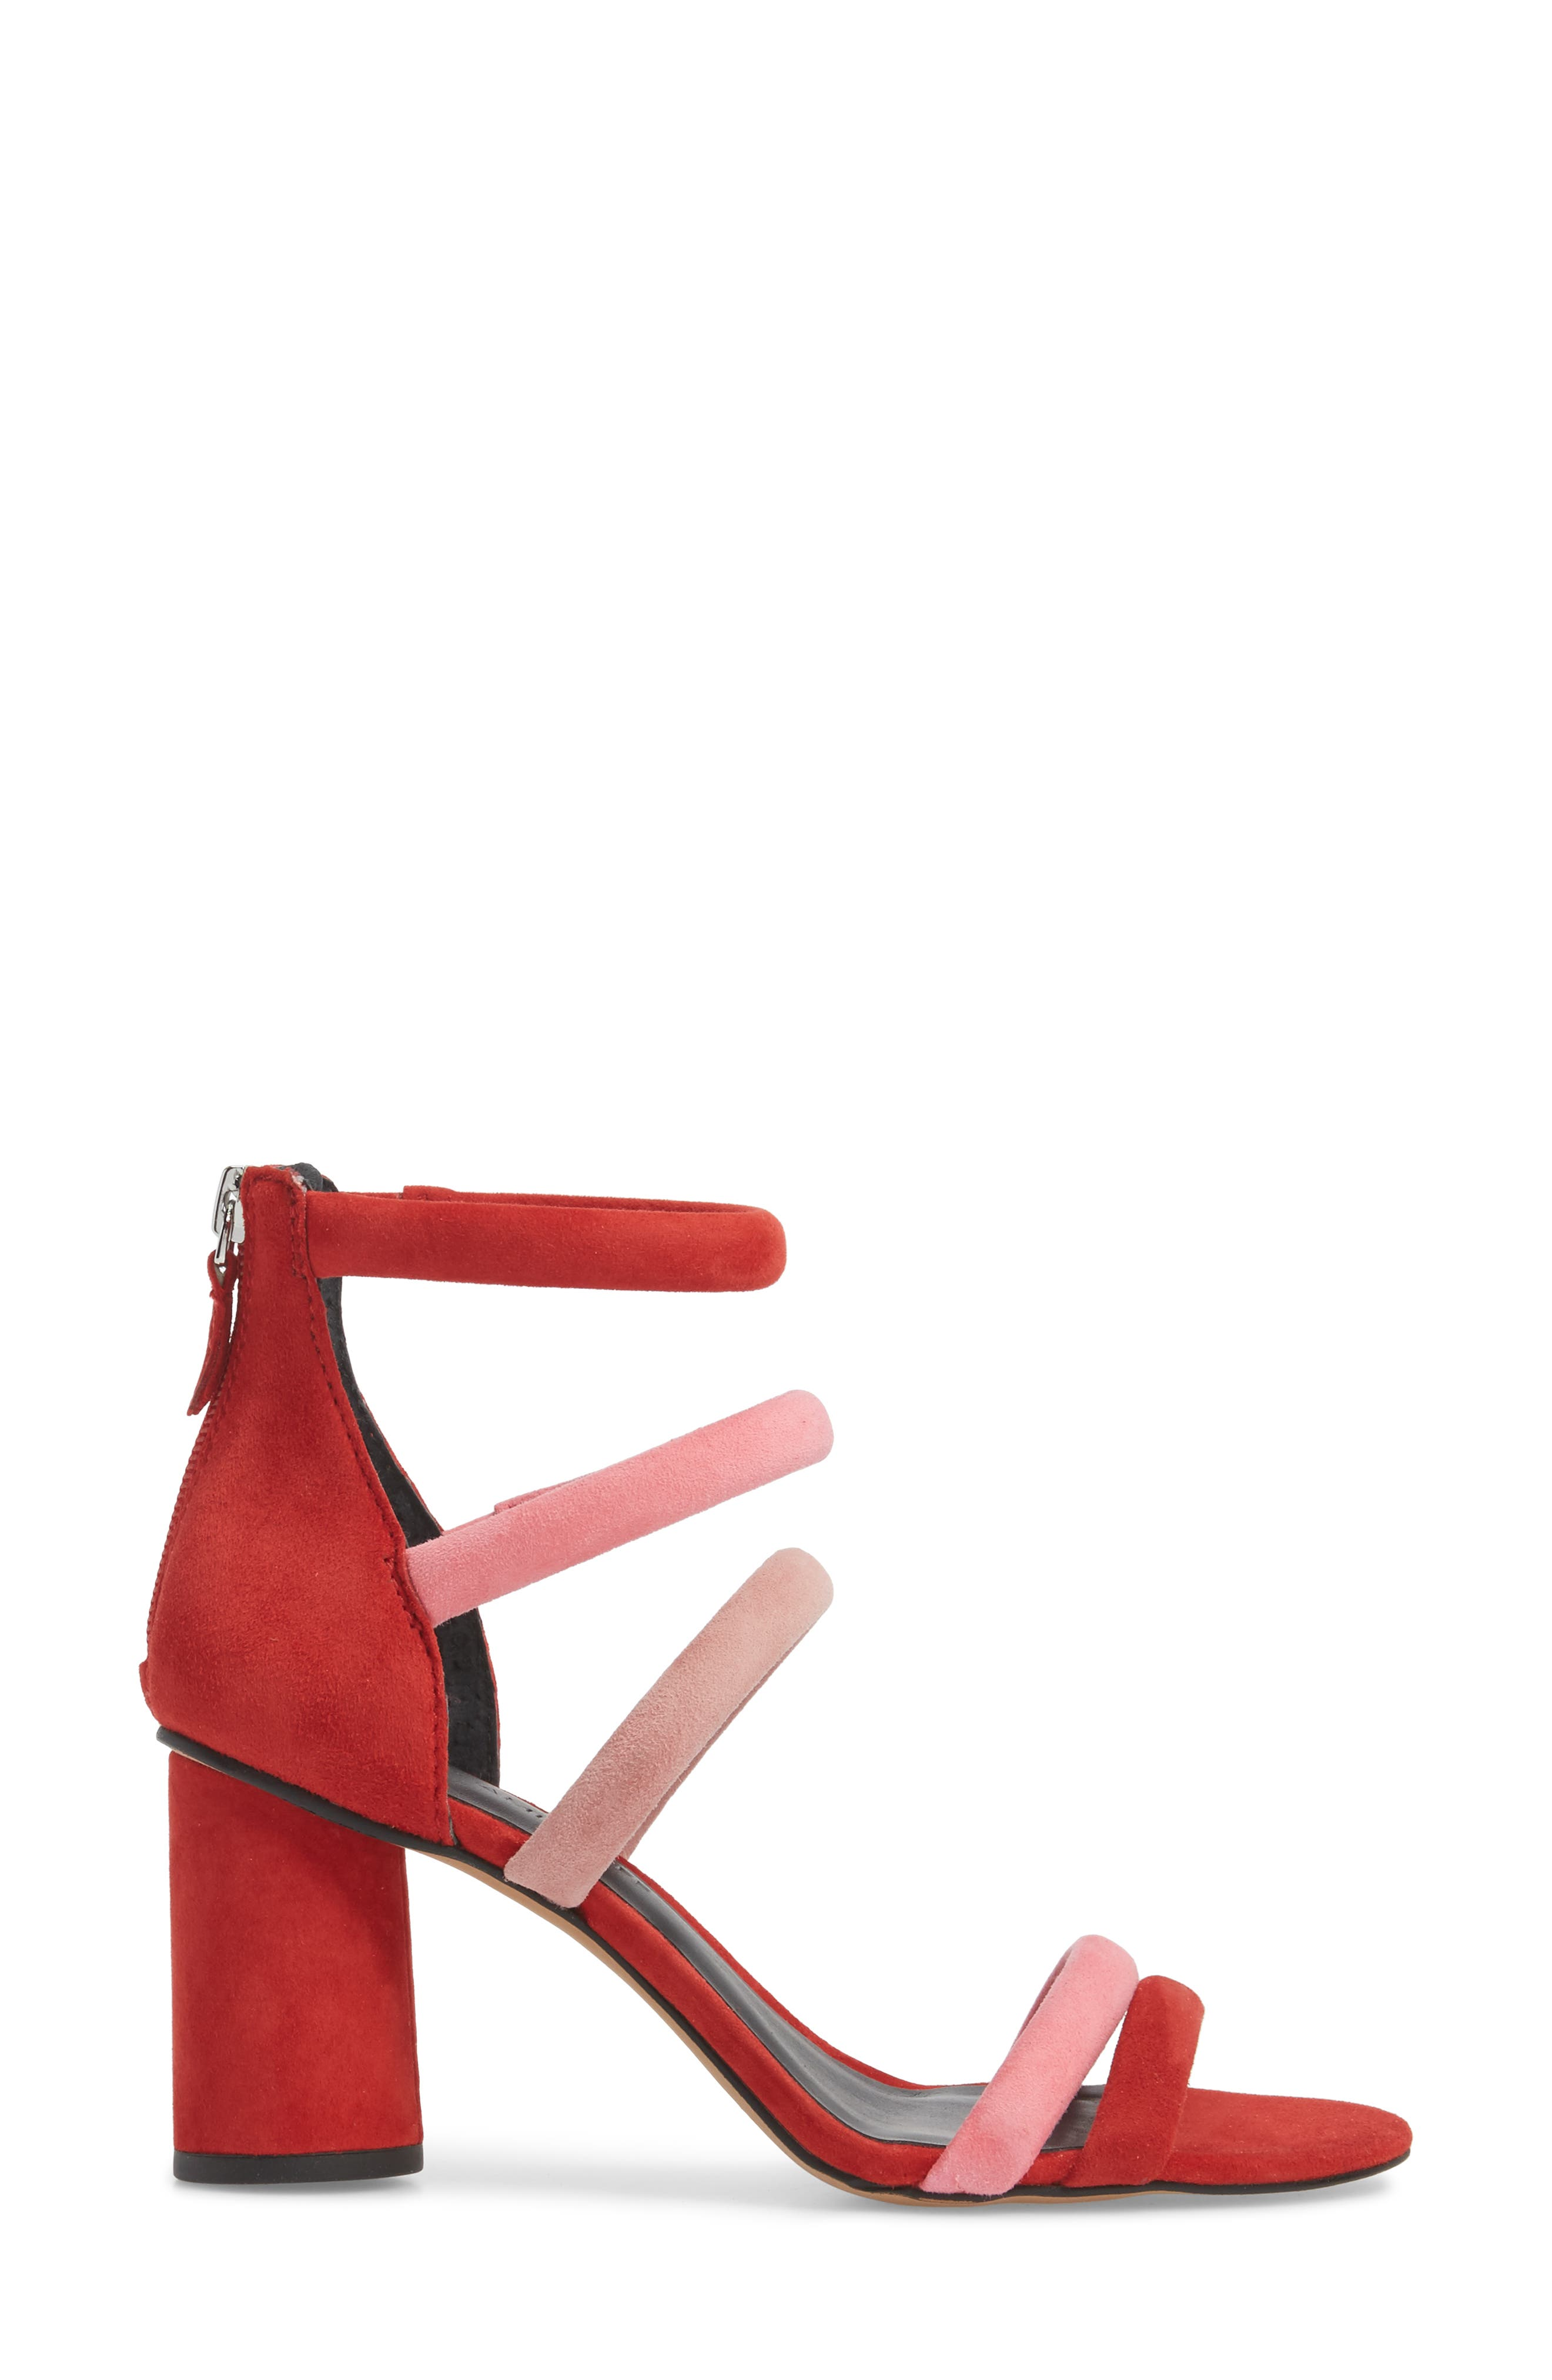 Andree Sandal,                             Alternate thumbnail 3, color,                             Cherry Suede